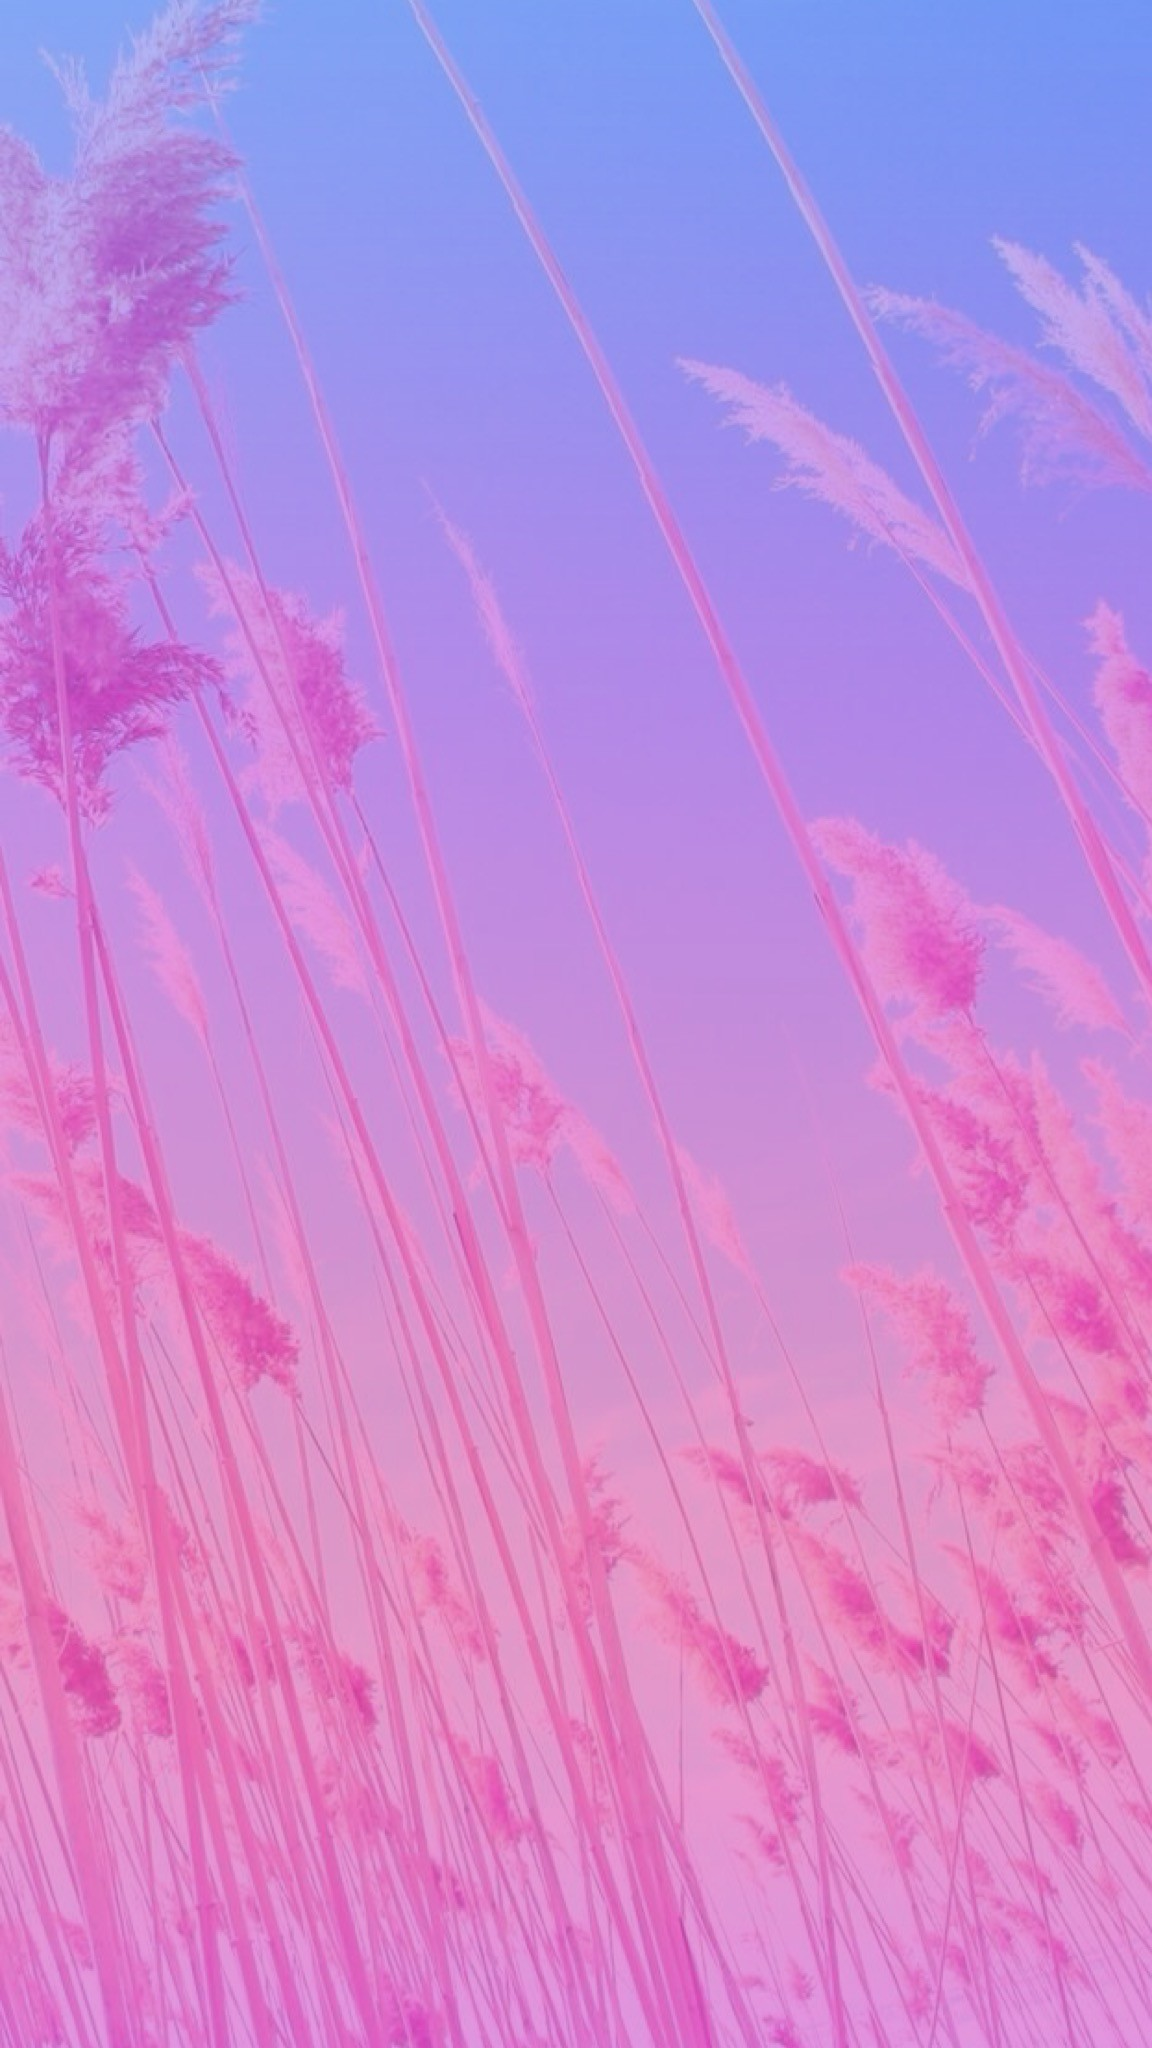 Wallpaper backgrounds · Original image not by me! I just made the  ombré/gradient. Pink,